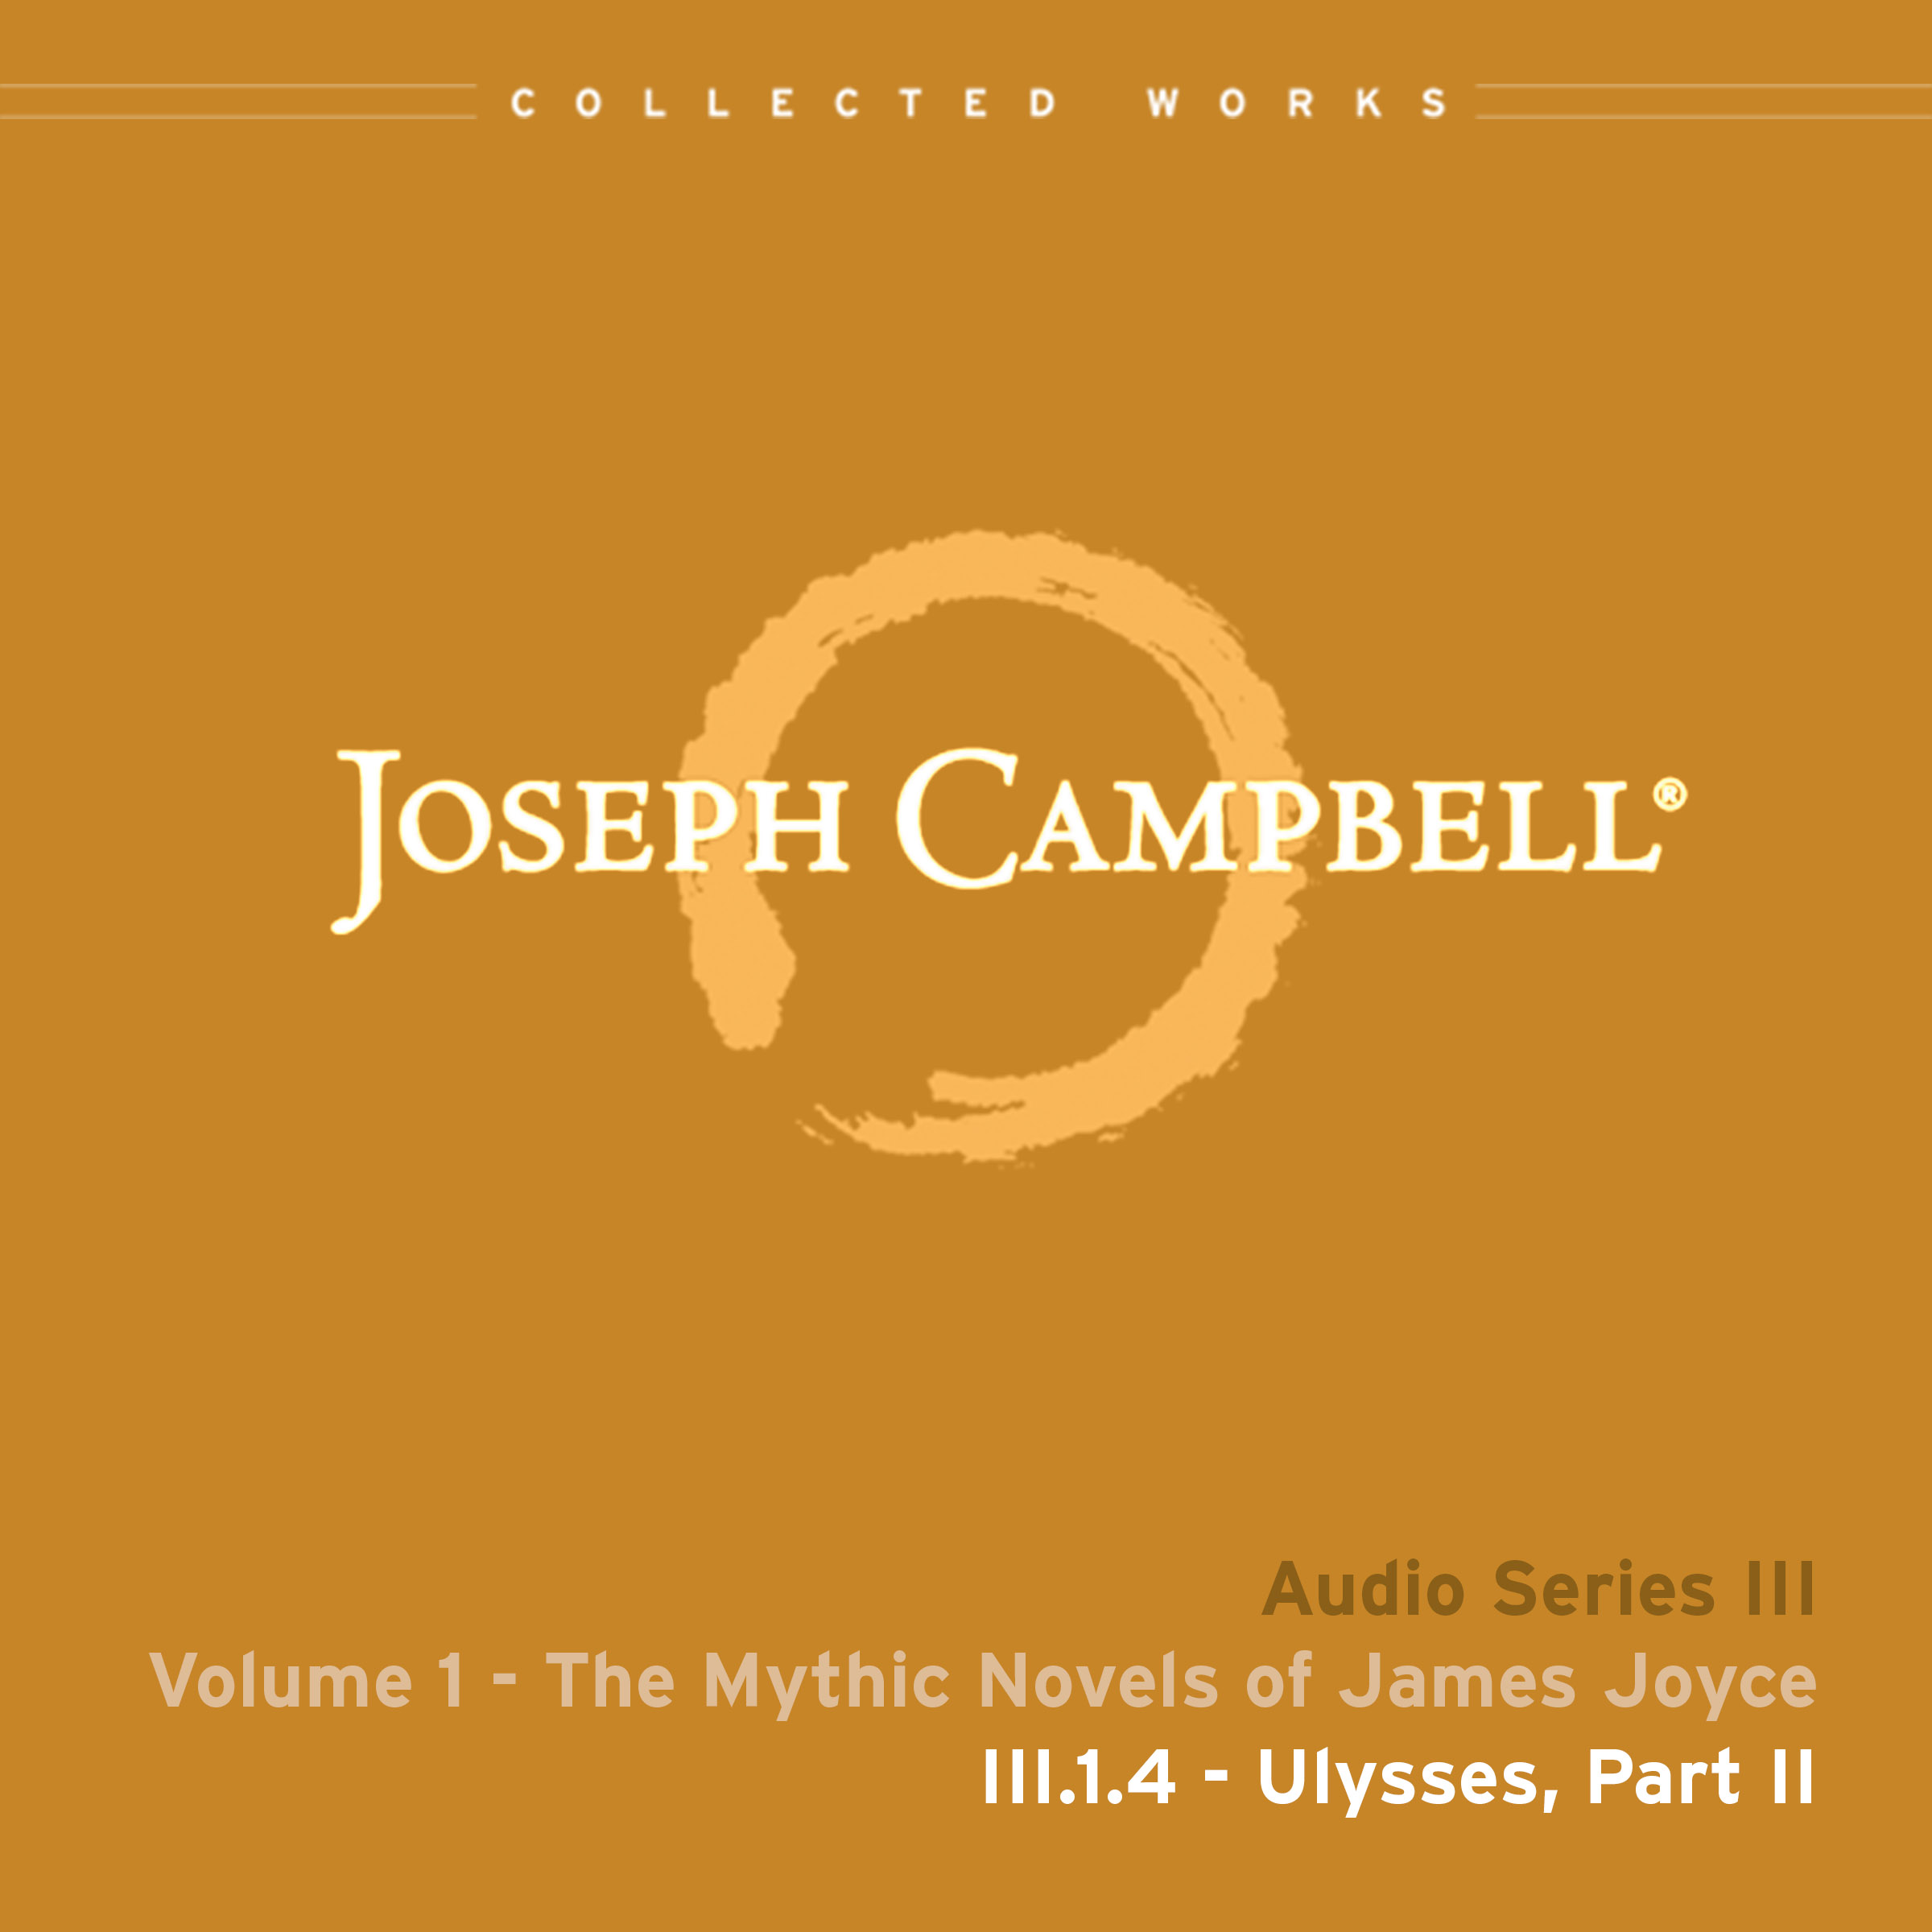 Audio: Lecture III.1.4 - Ulysses Part 2